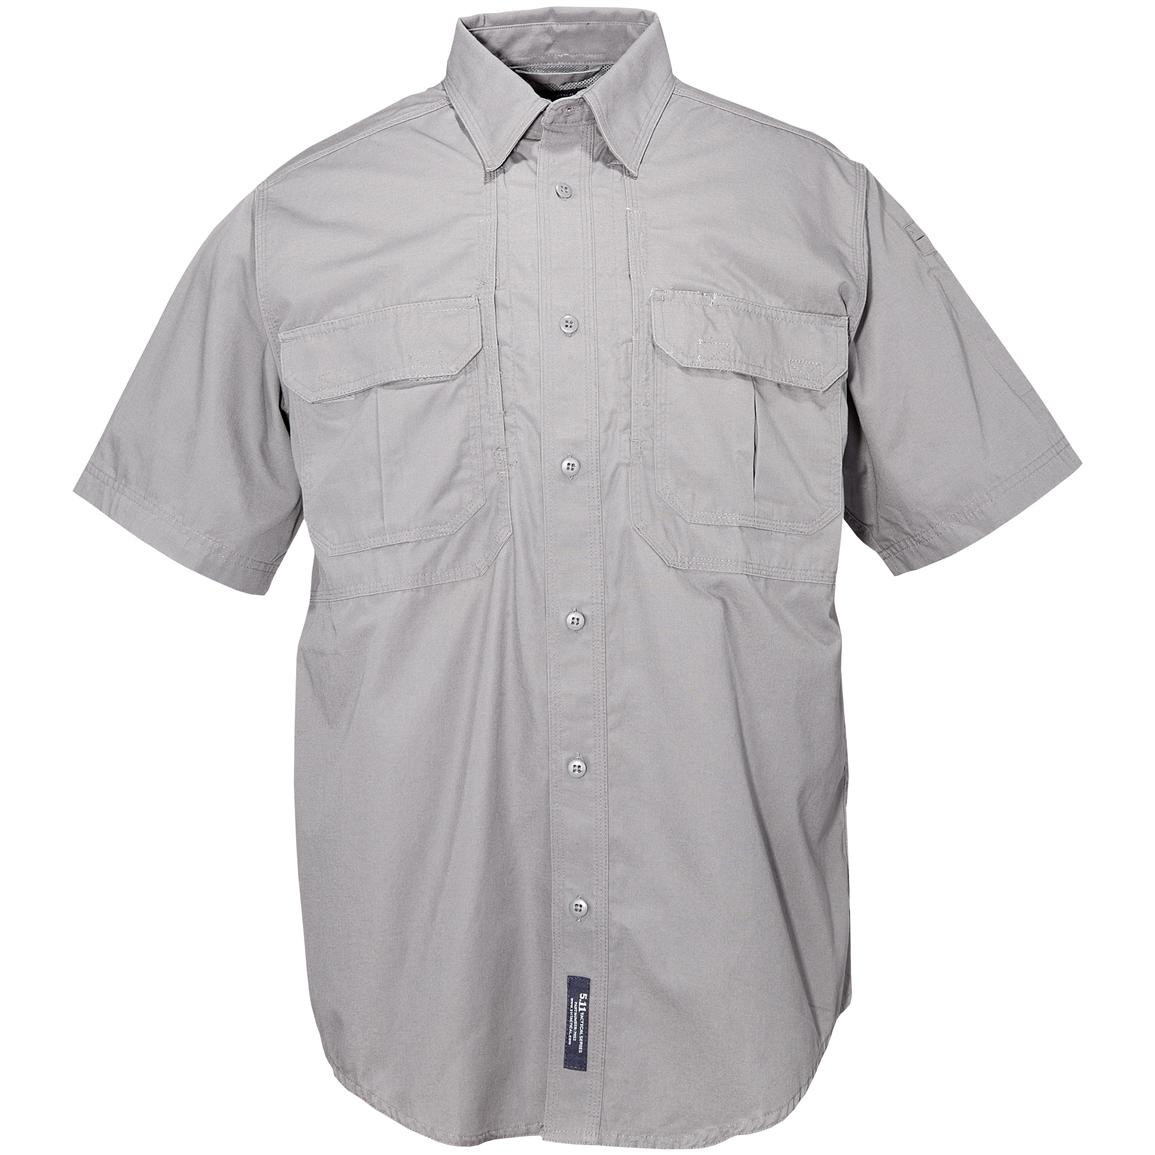 Men's 5.11 Tactical Short-sleeved Cotton Shirt, Gray